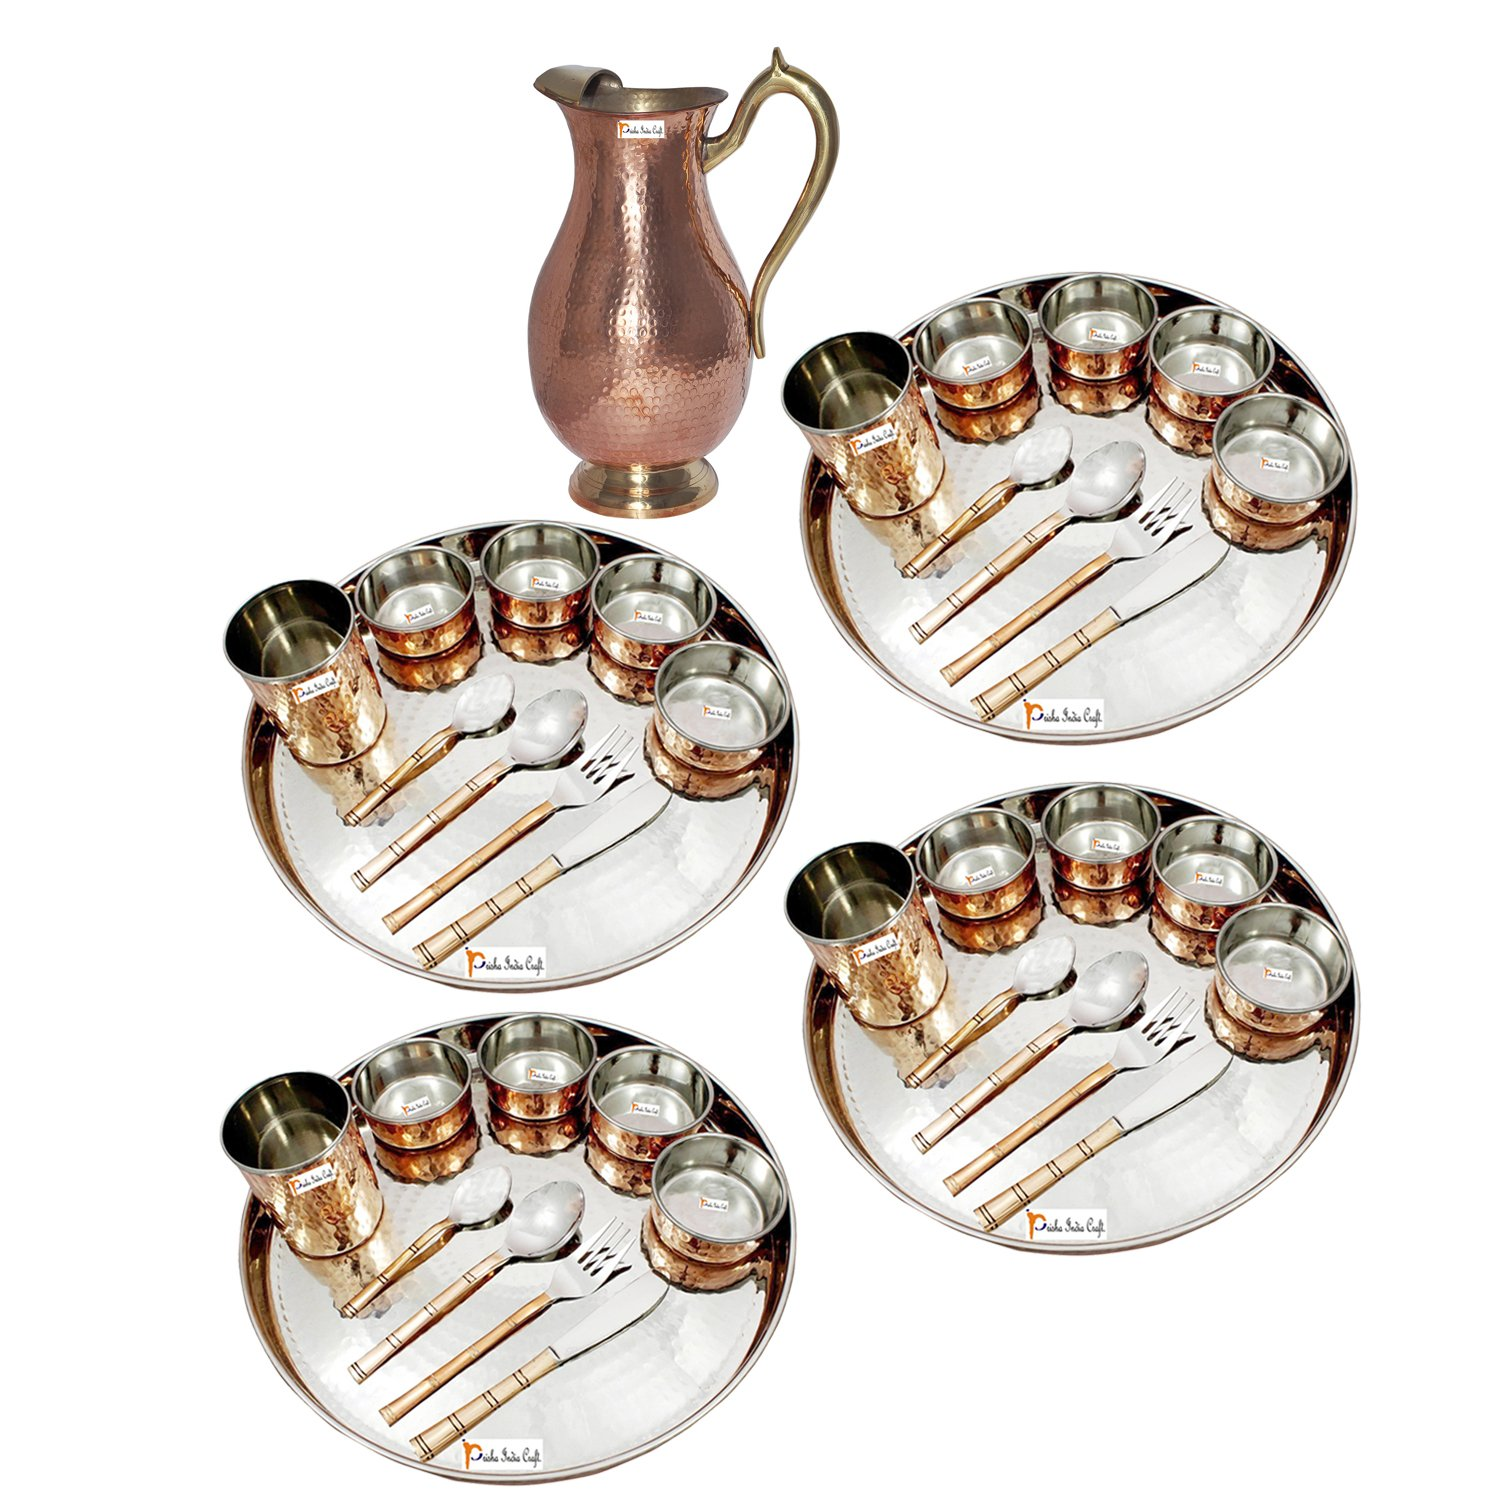 Prisha India Craft ® Set of 4 Dinnerware Traditional Stainless Steel Copper Dinner Set of Thali Plate, Bowls, Glass and Spoons, Dia 13'' With 1 Pure Copper Mughal Pitcher Jug - Christmas Gift